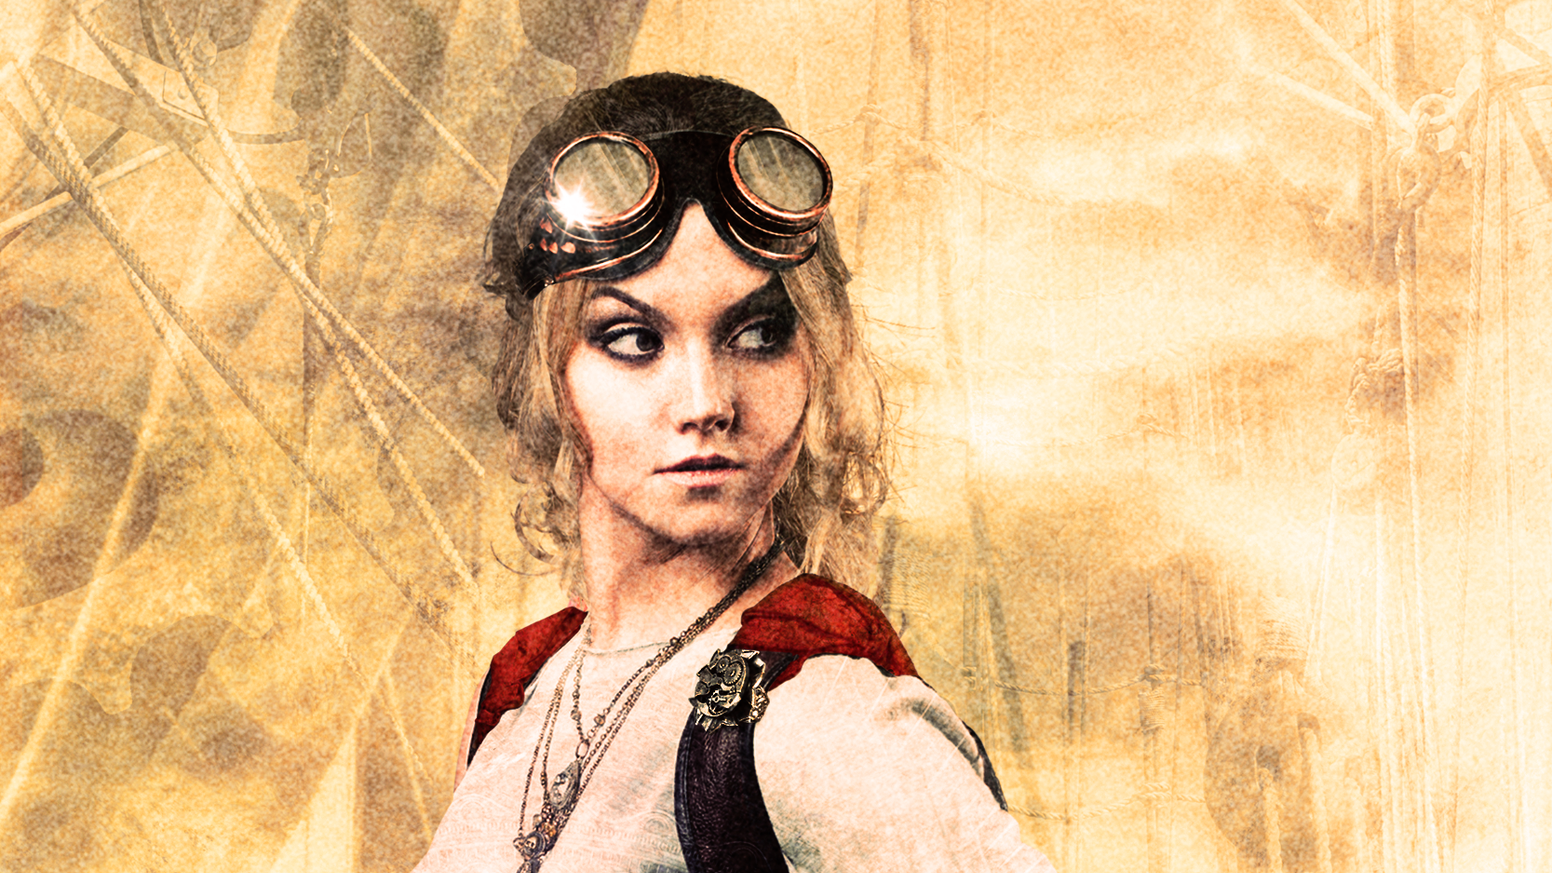 A special signed hardcover edition of the #1 Bestselling steampunk fantasy series!